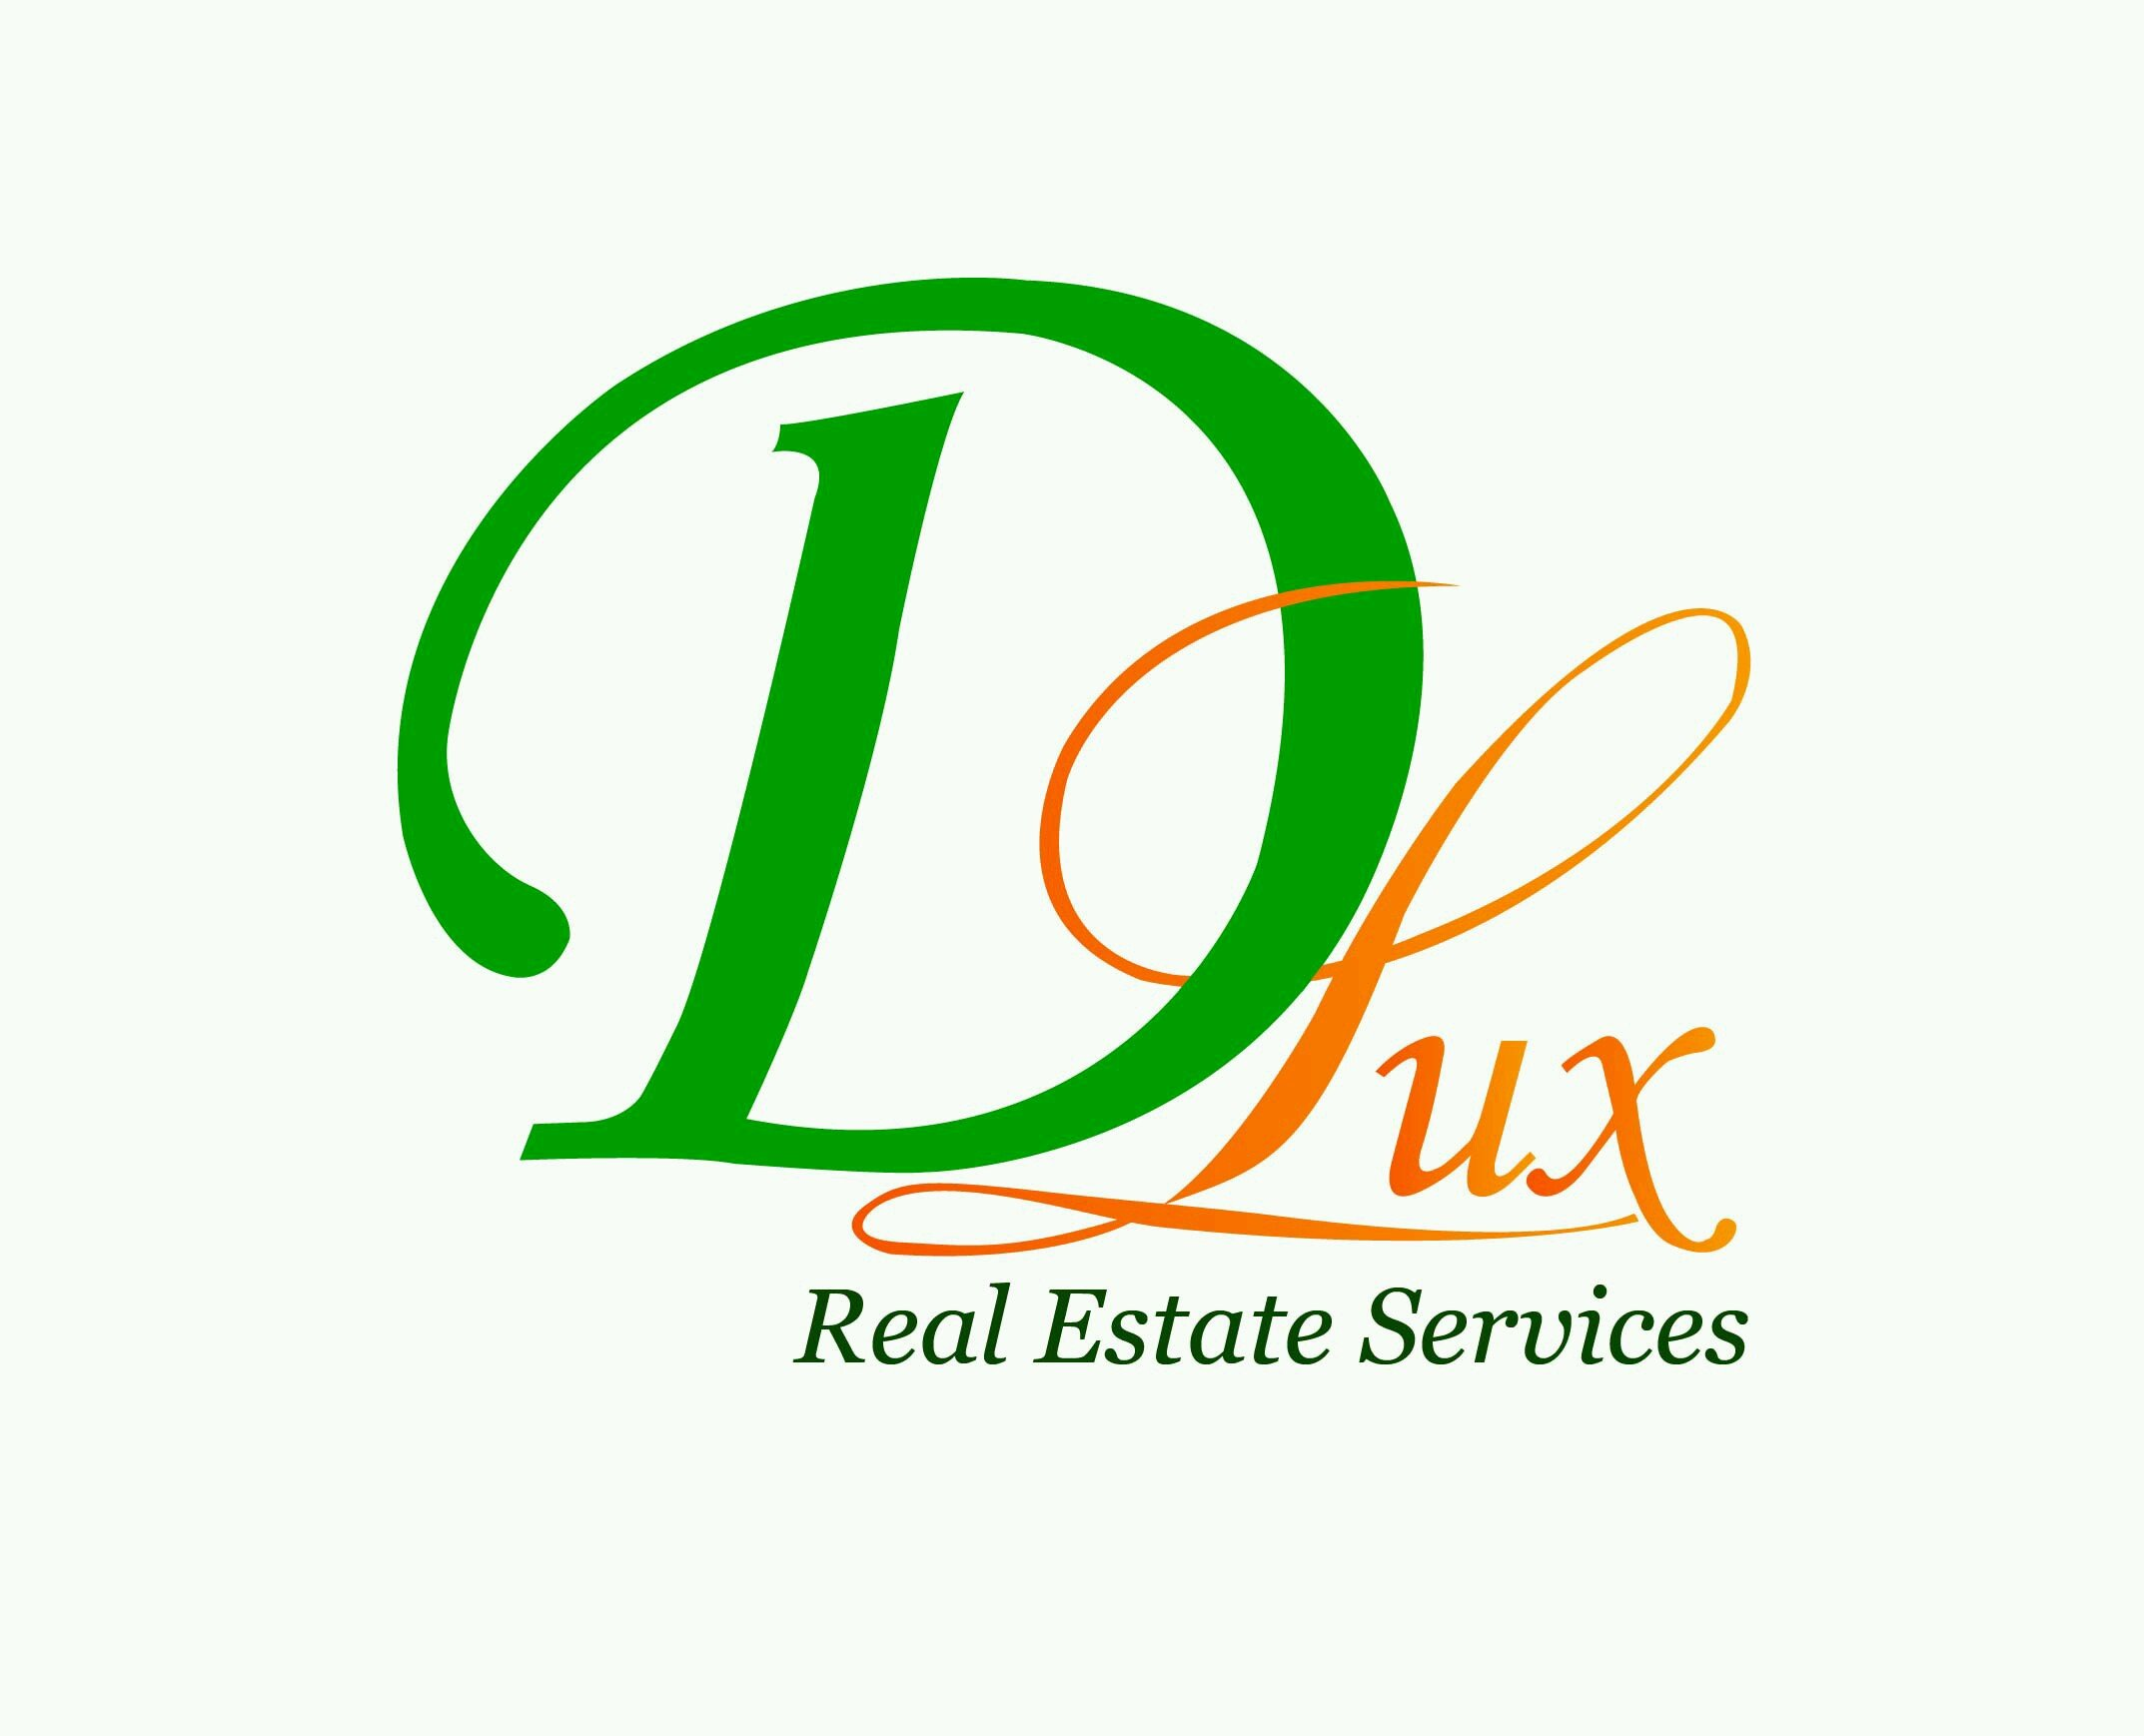 D'lux Real Estate